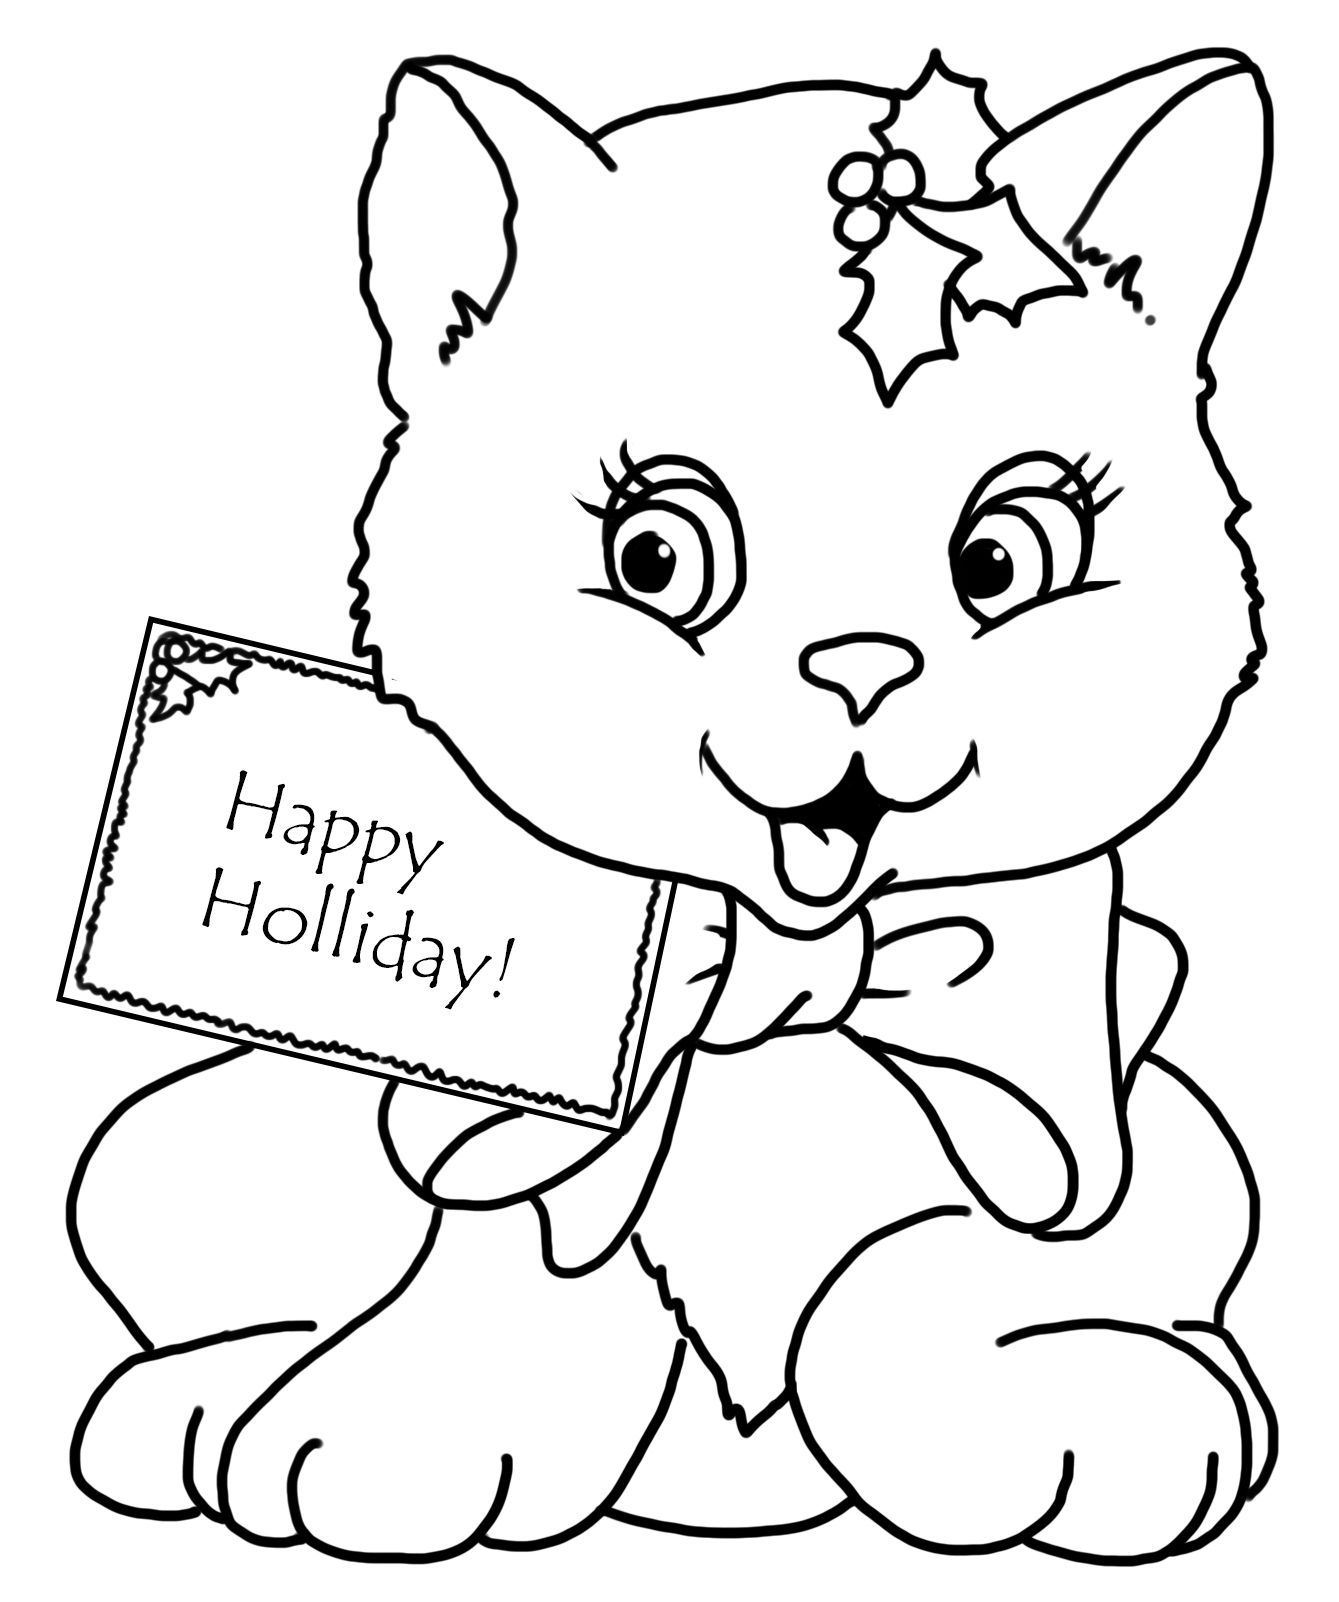 Christmas Coloring Page With Cat And Greeting Cat Coloring Page Christmas Coloring Sheets Coloring Pages